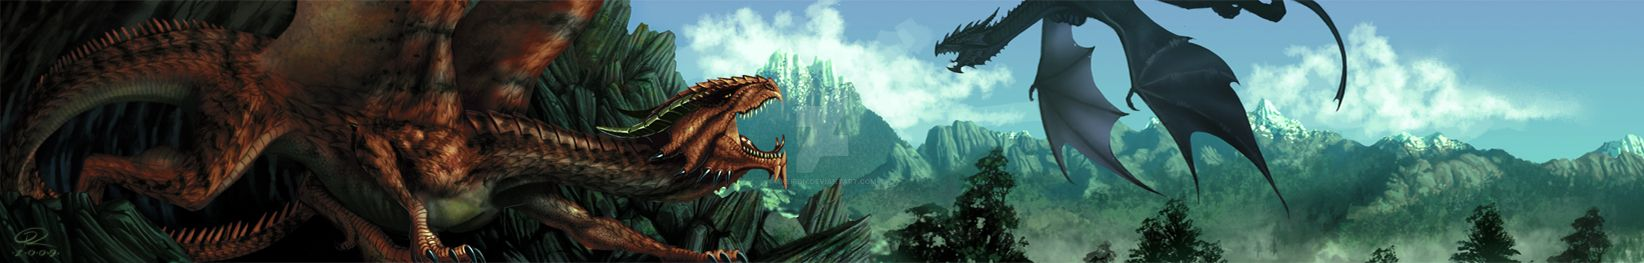 Banner Dragons' Lair by Akeiron